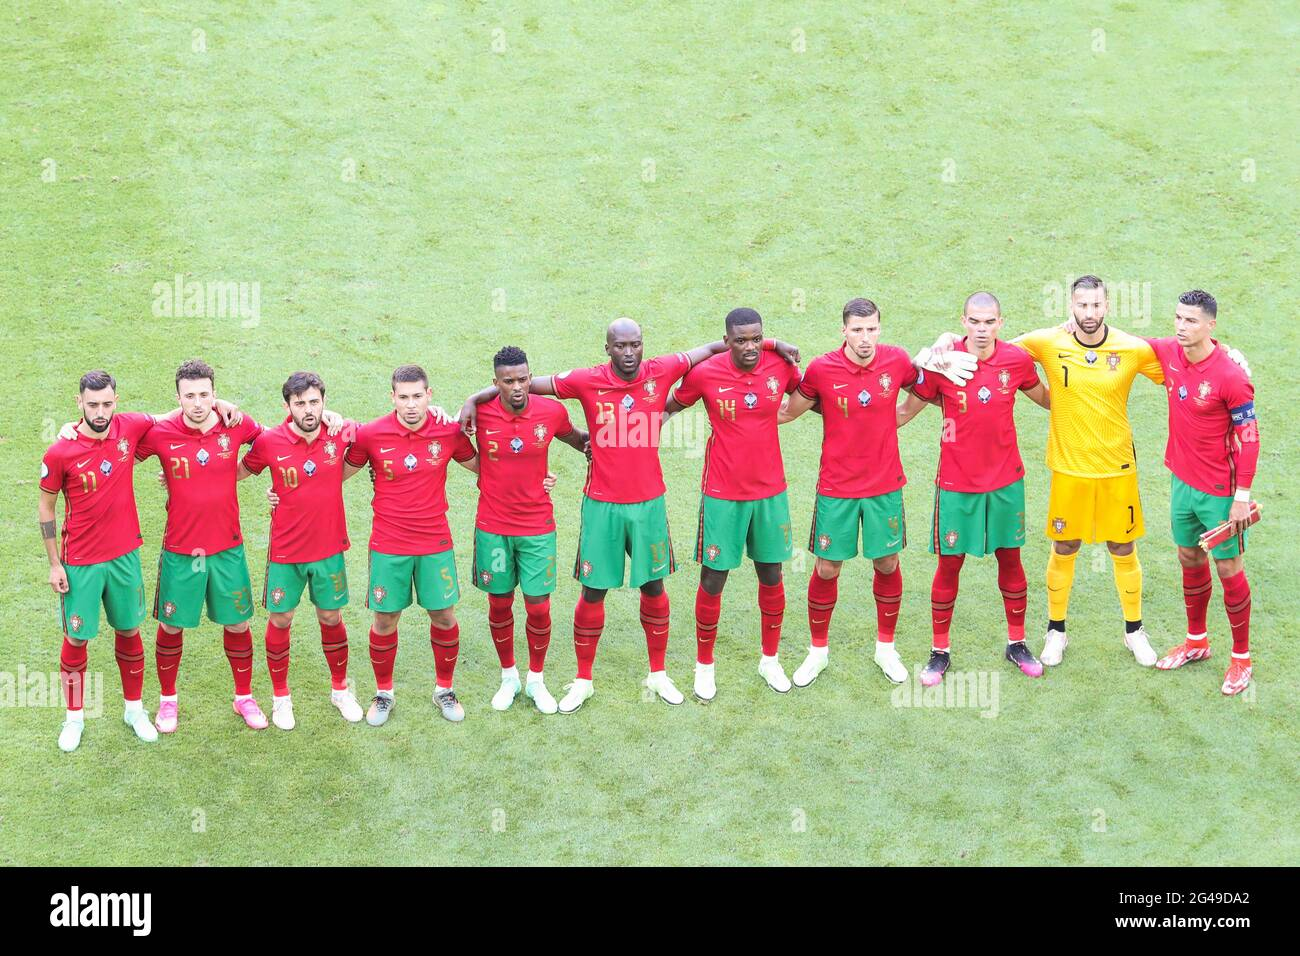 Munich, Germany. 19th June, 2021. Players of Portugal line up during the national anthem ceremony prior to the UEFA Euro 2020 Championship Group F match between Portugal and Germany in Munich, Germany, June 19, 2021. Credit: Shan Yuqi/Xinhua/Alamy Live News Stock Photo